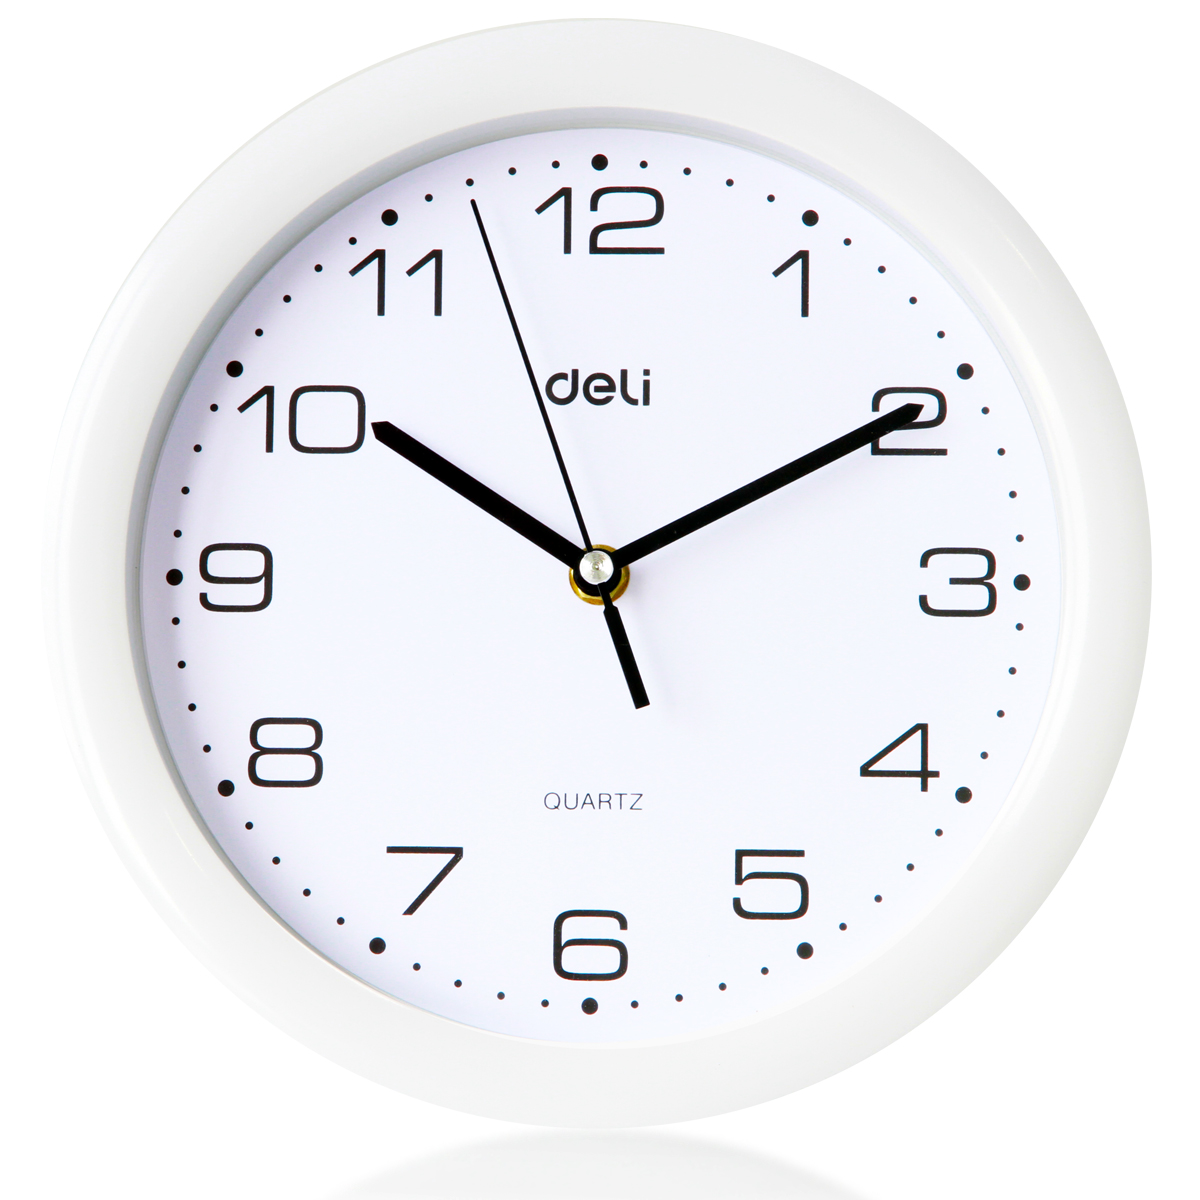 Free shipping deli stationery 9003 round wall clock fashion home office type 7.5 inch diameter 25 cm